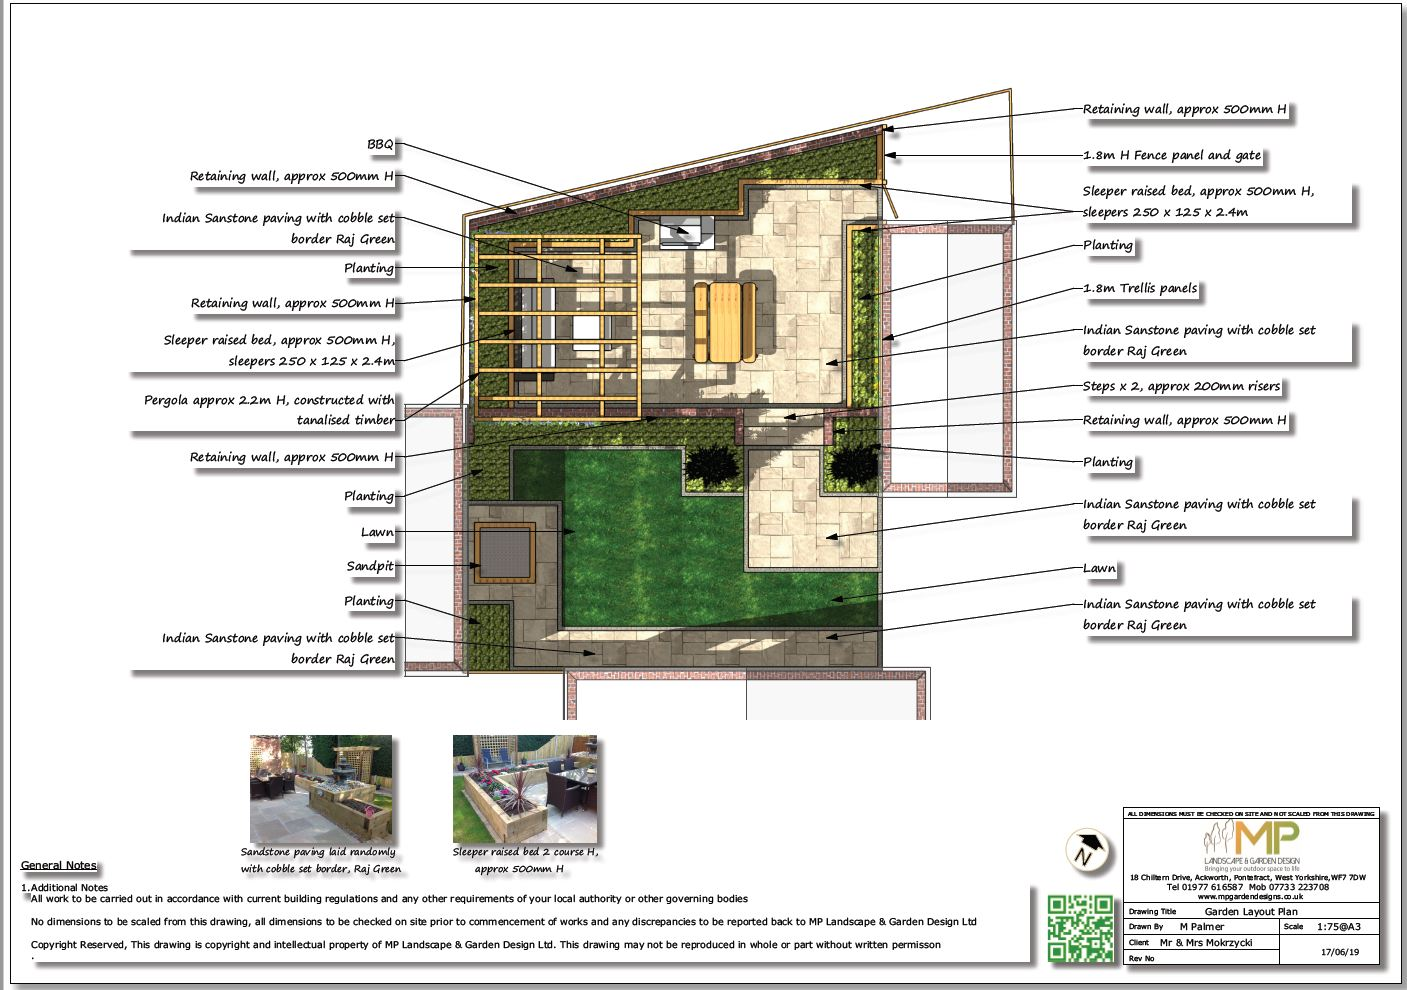 1, Garden layout plan for a property in Normanton, West Yorkshire.